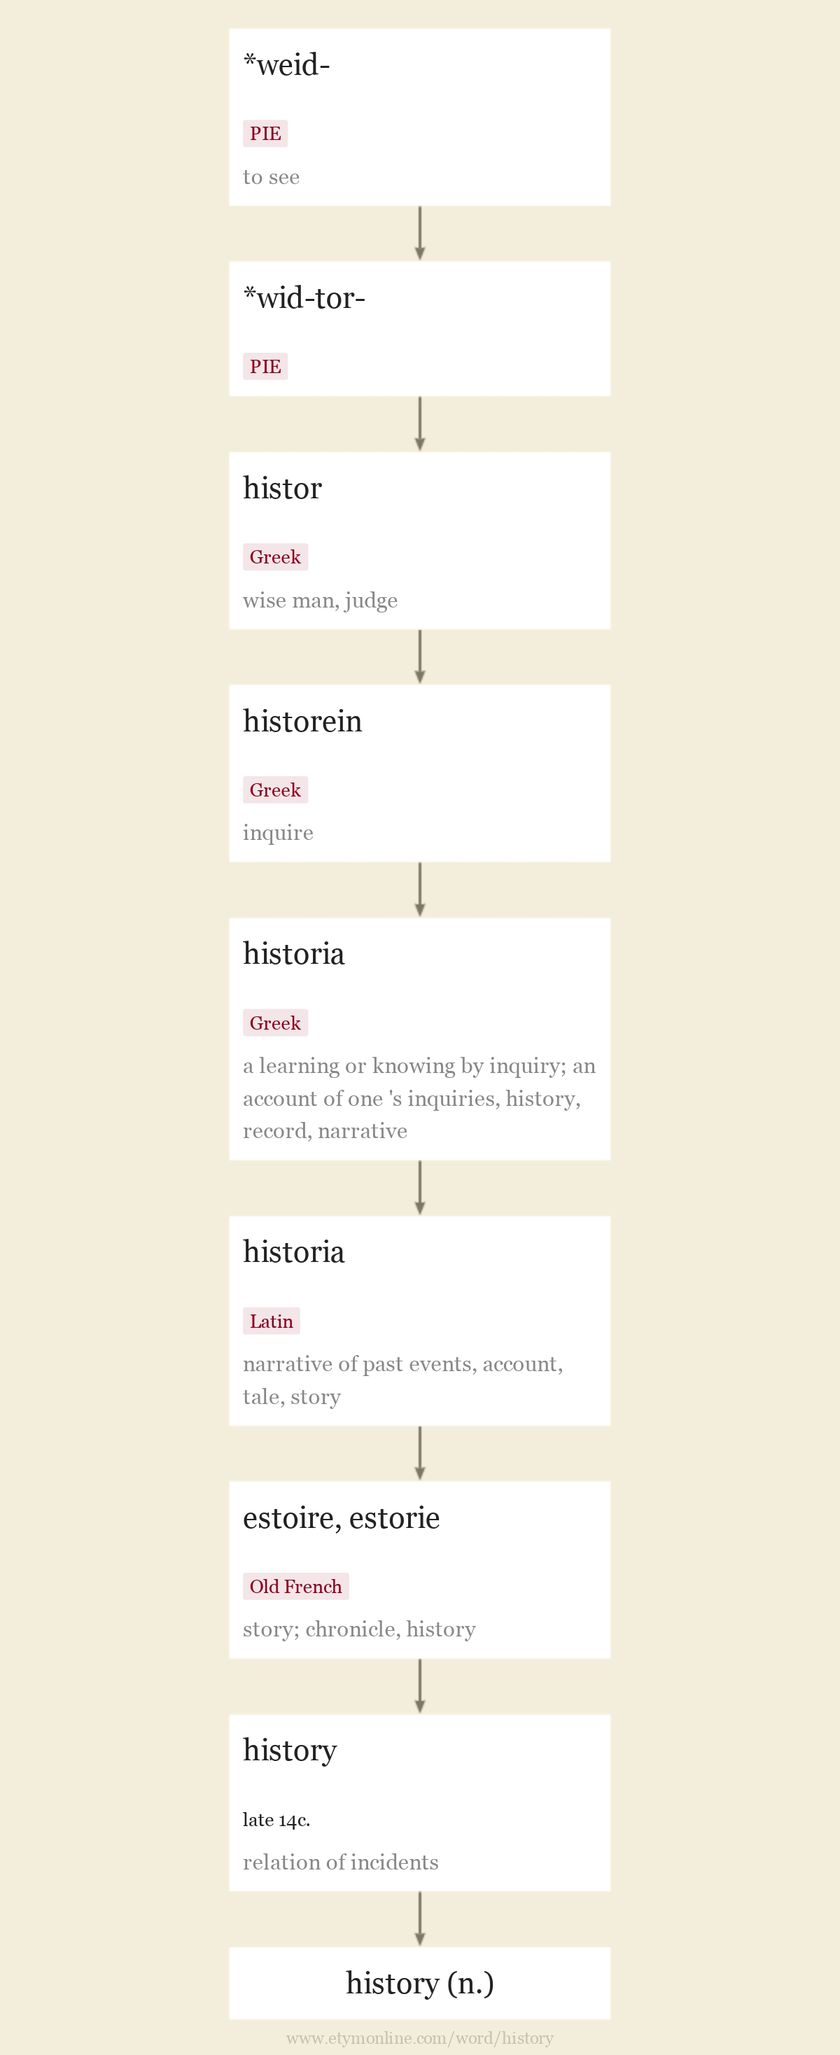 O History S History Origin And Meaning Of History By Online Etymology Dictionary